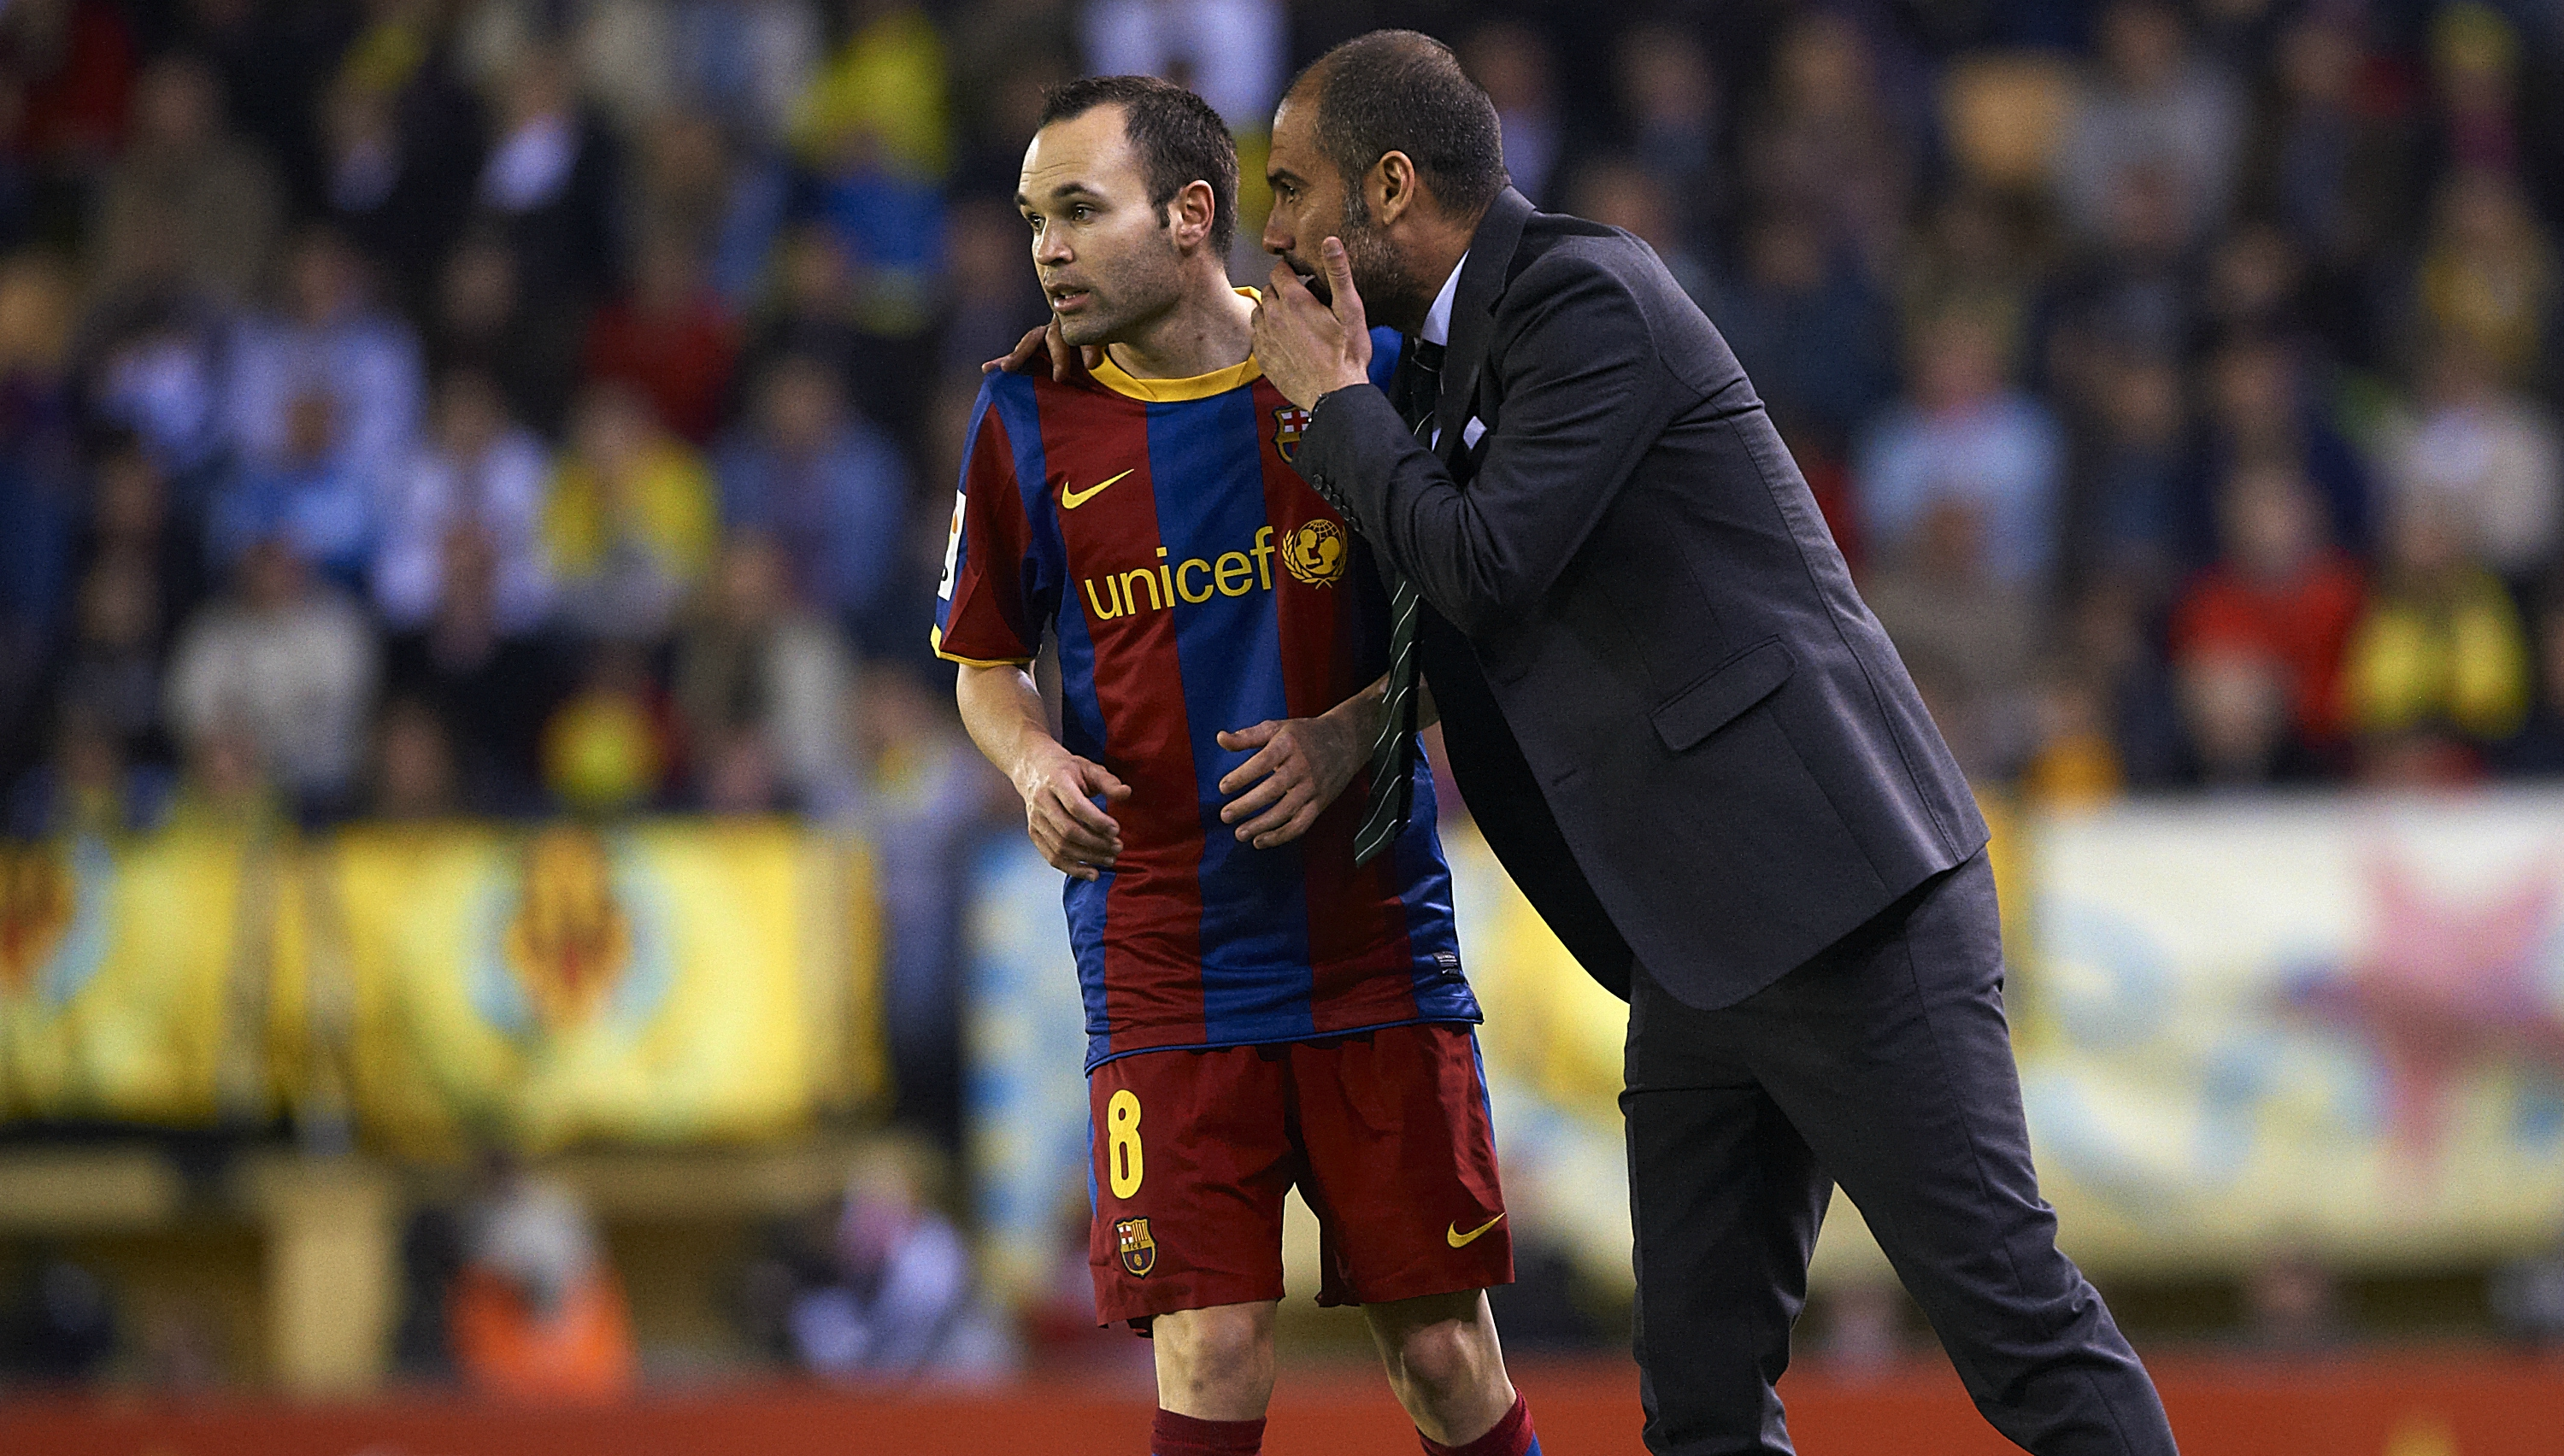 Speculation intensifies over Andres Iniesta's likely transfer to Chongqing Dangdai Lifan